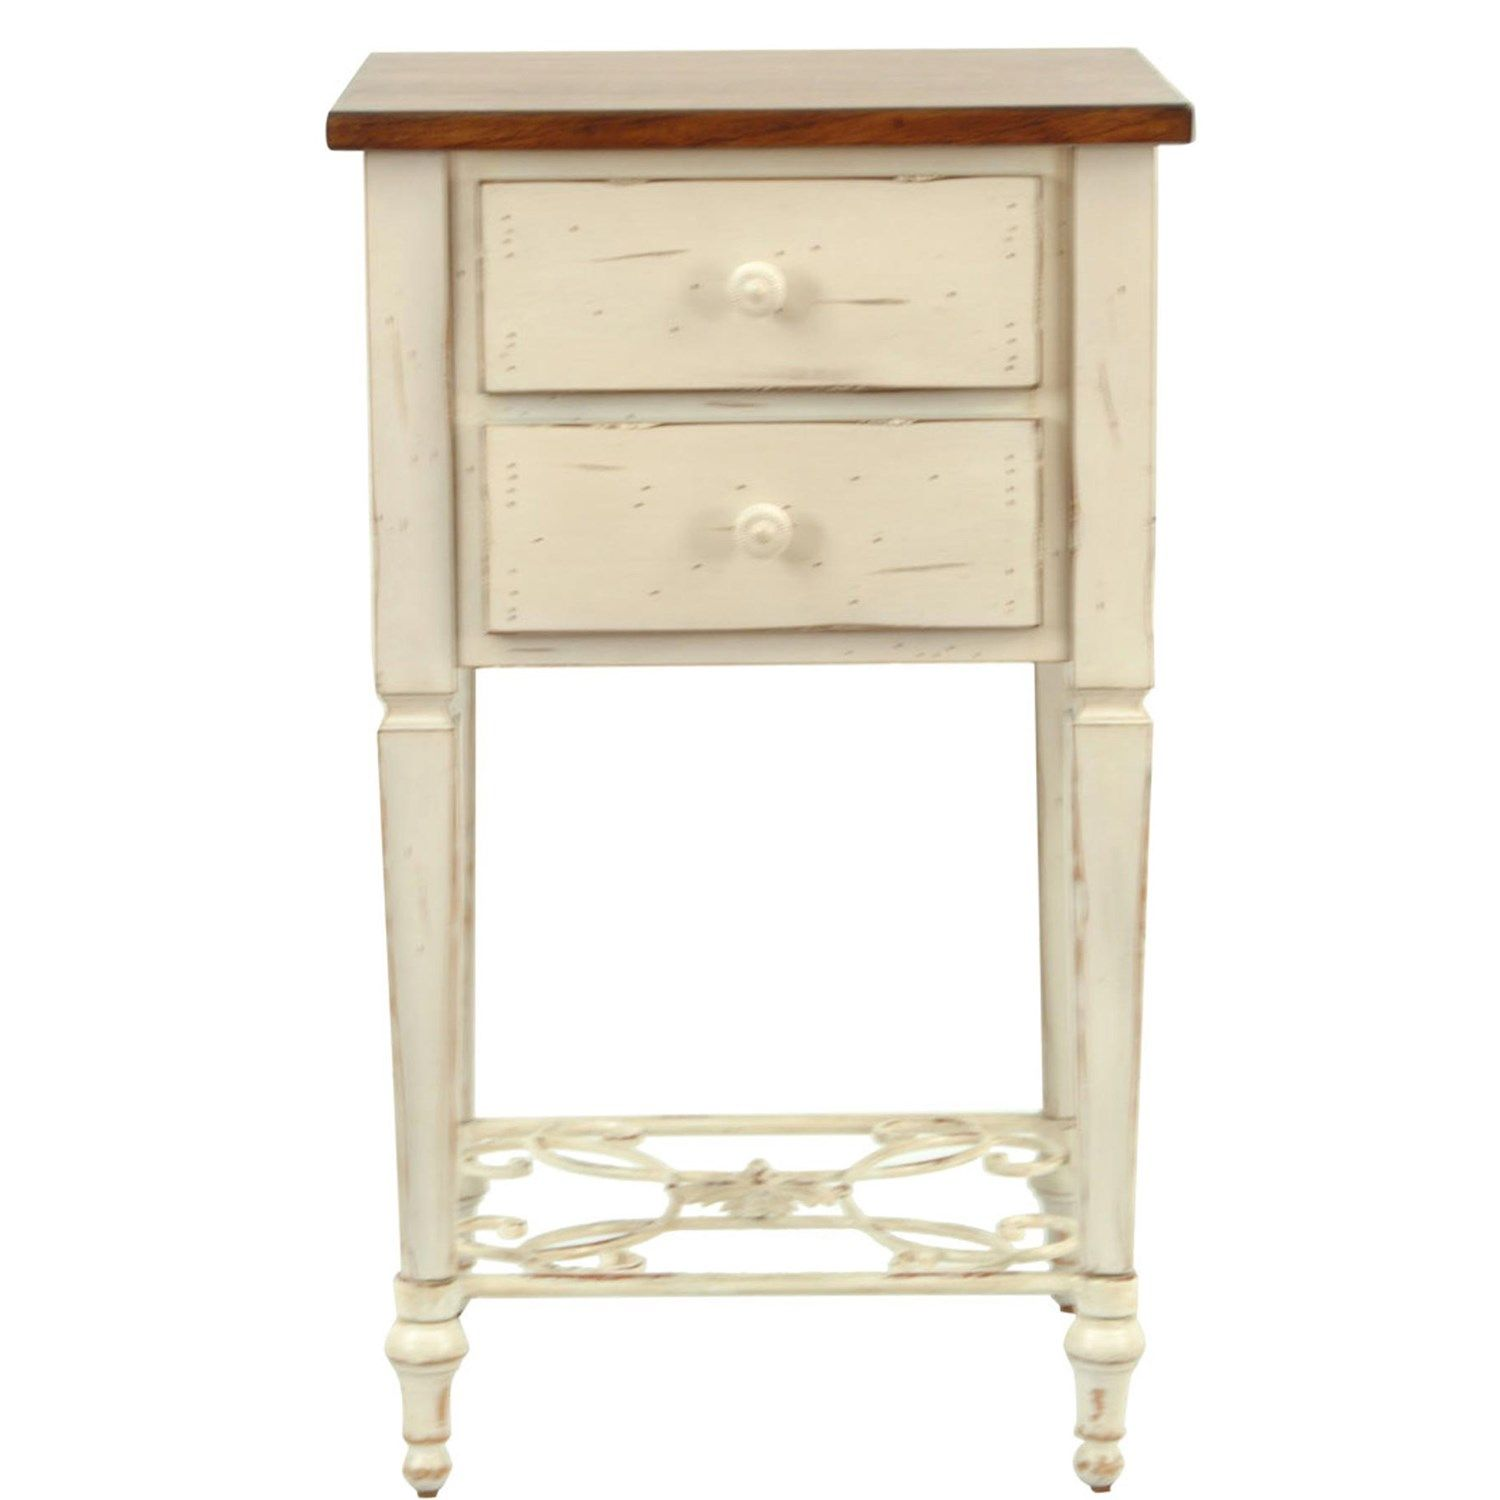 safavieh amh4004a monica 2 drawer end table in white wash and light brown - White Wash End Tables